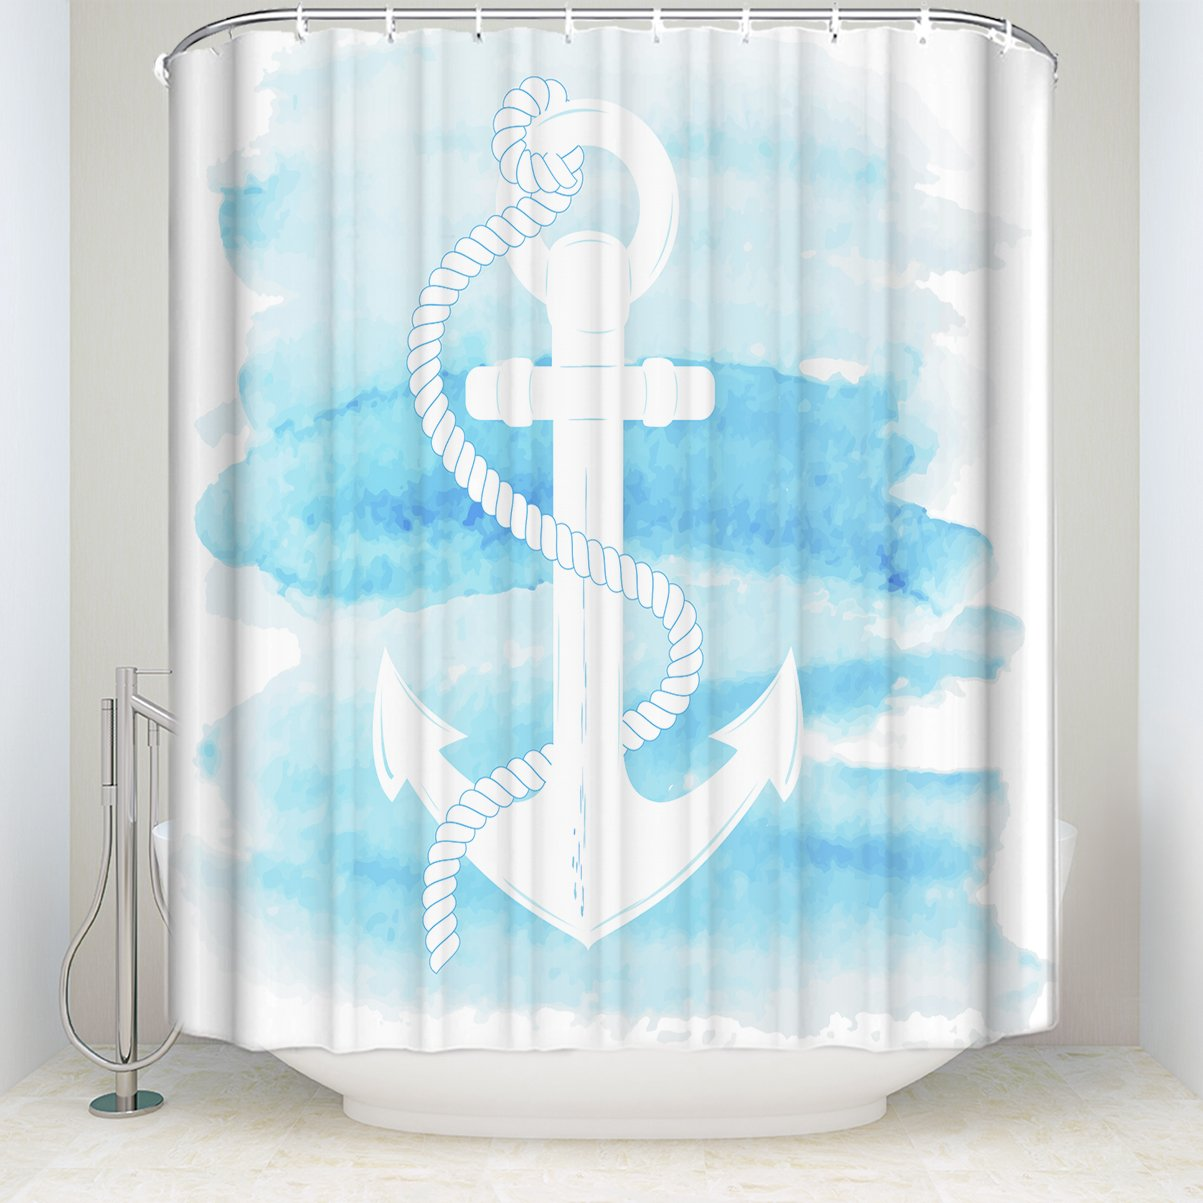 50OFF KAROLA Shower Curtain Bathroom Decor 54 X 72 Watercolor